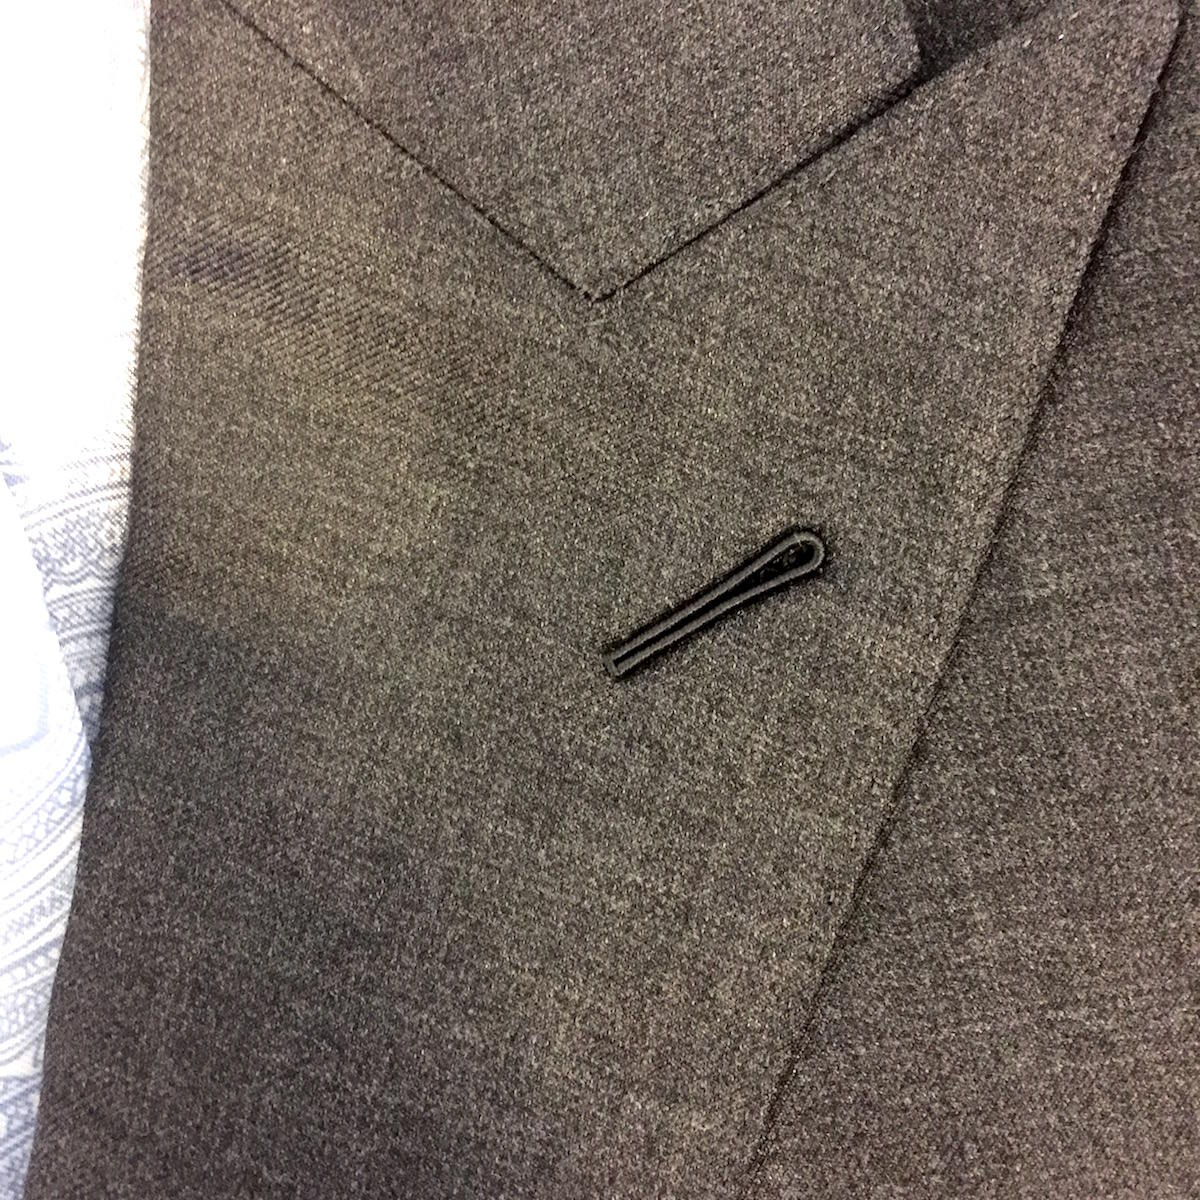 Lapel button hole